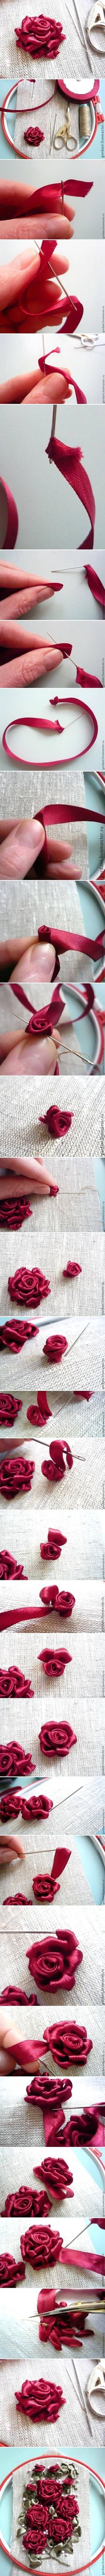 Multi-layered Ribbon Rose Picture Tutorial...ribbon flowers